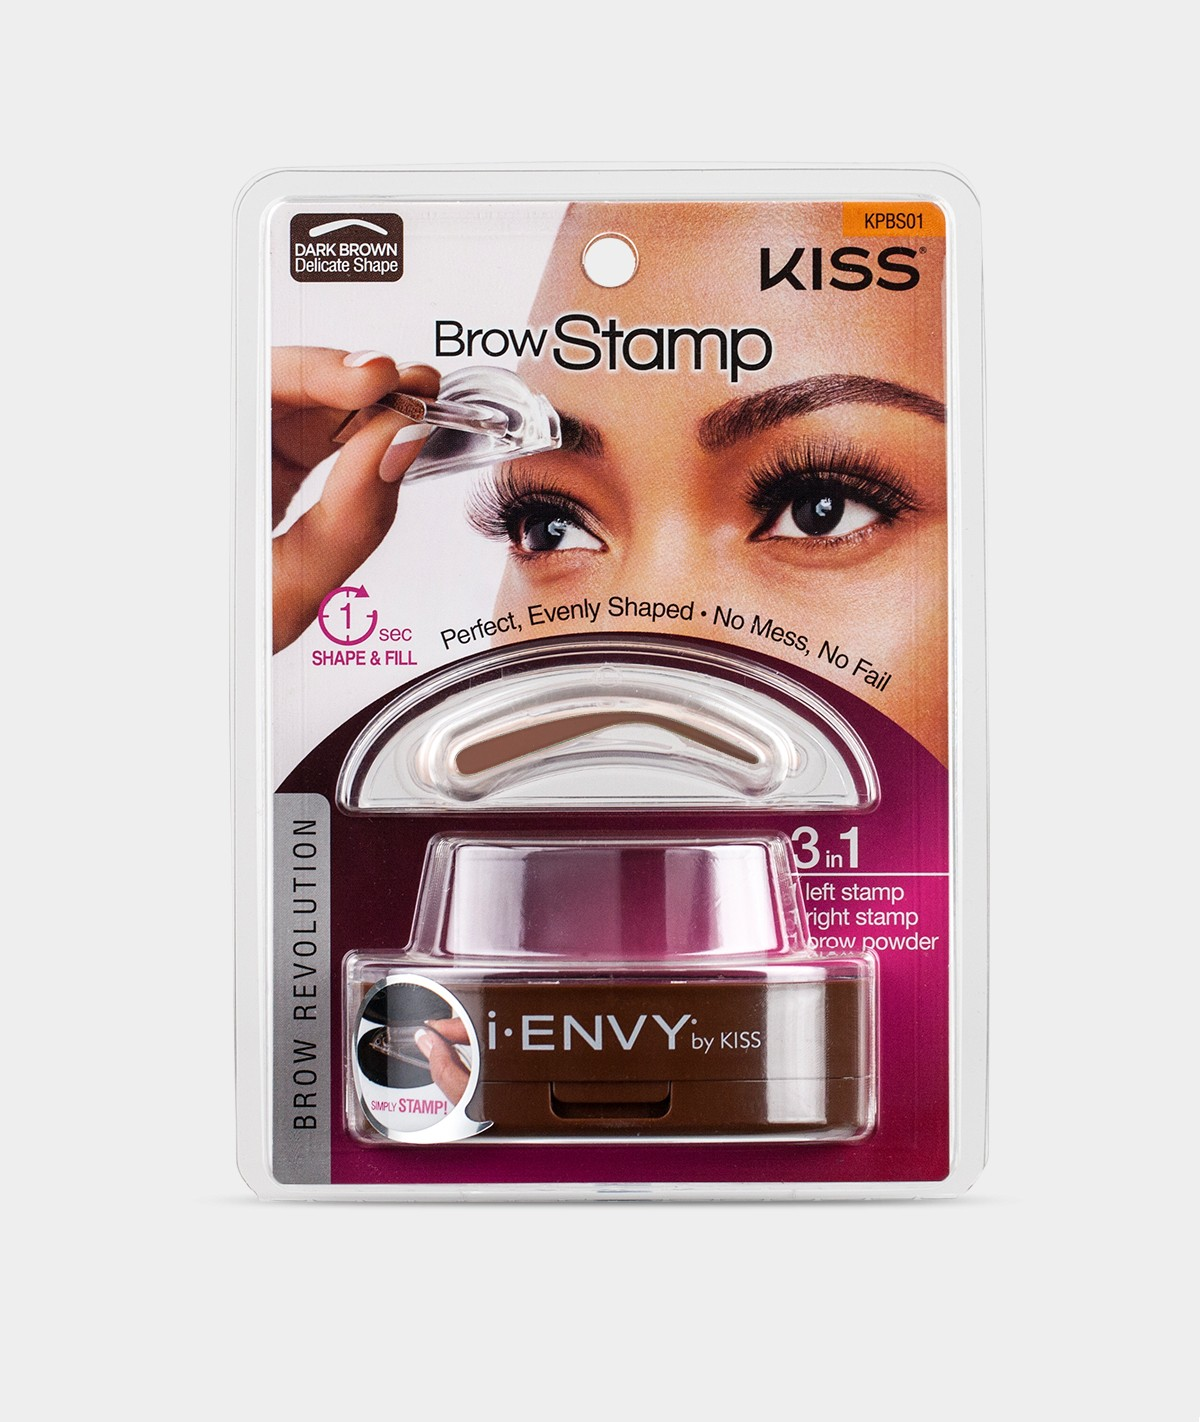 I Envy By Kiss Brow Stamp Powder Delicatenatural Shape Perfect